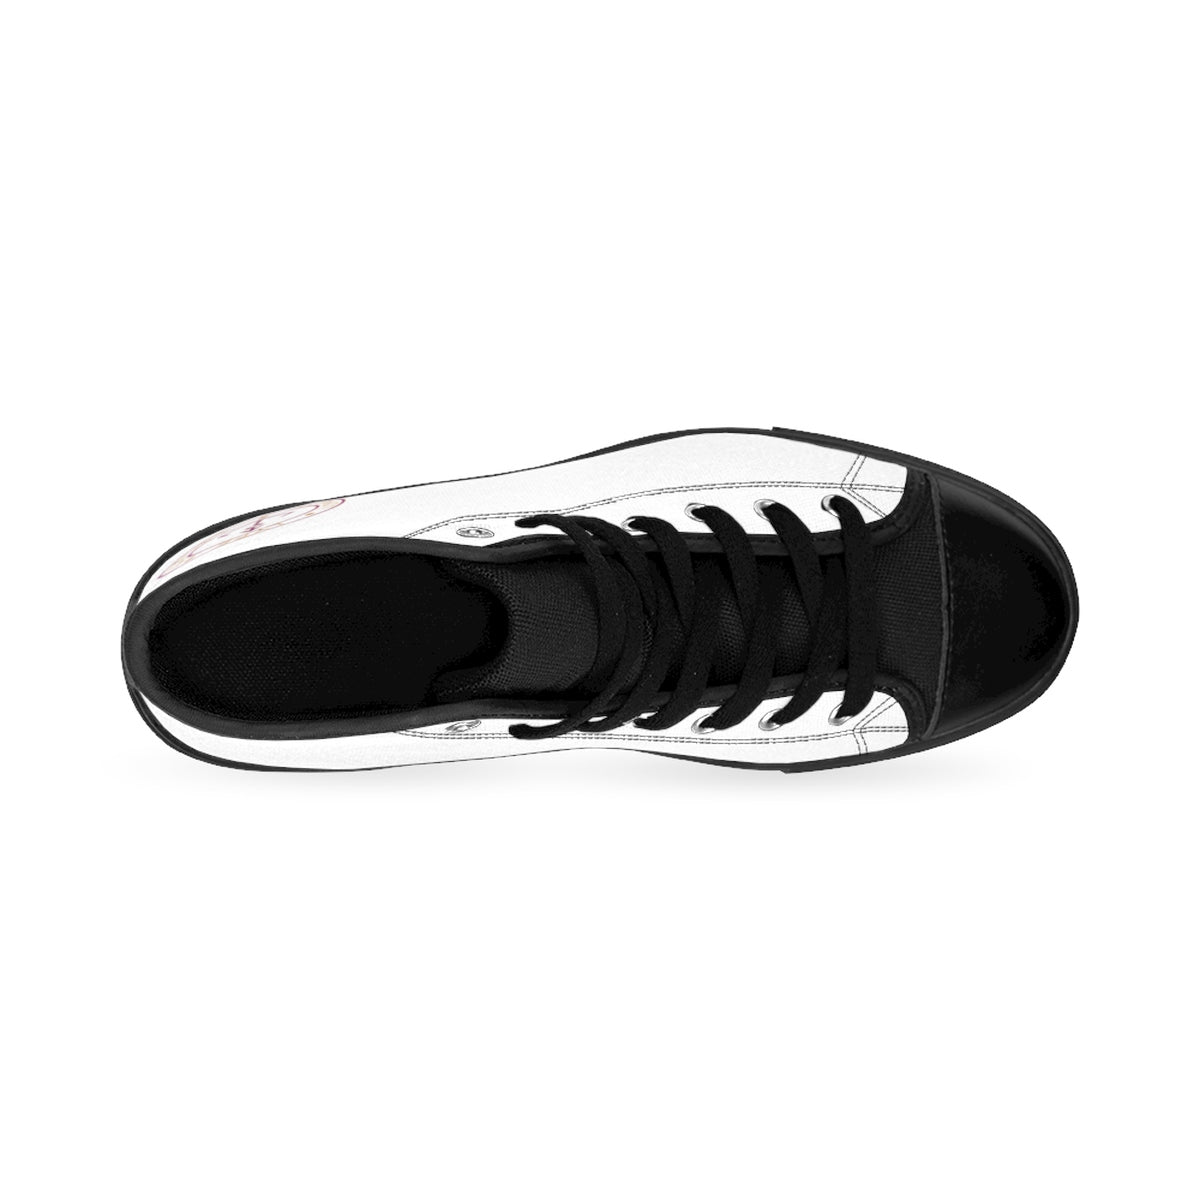 Loyalty Lyfe Legacy Women's High-top Sneakers